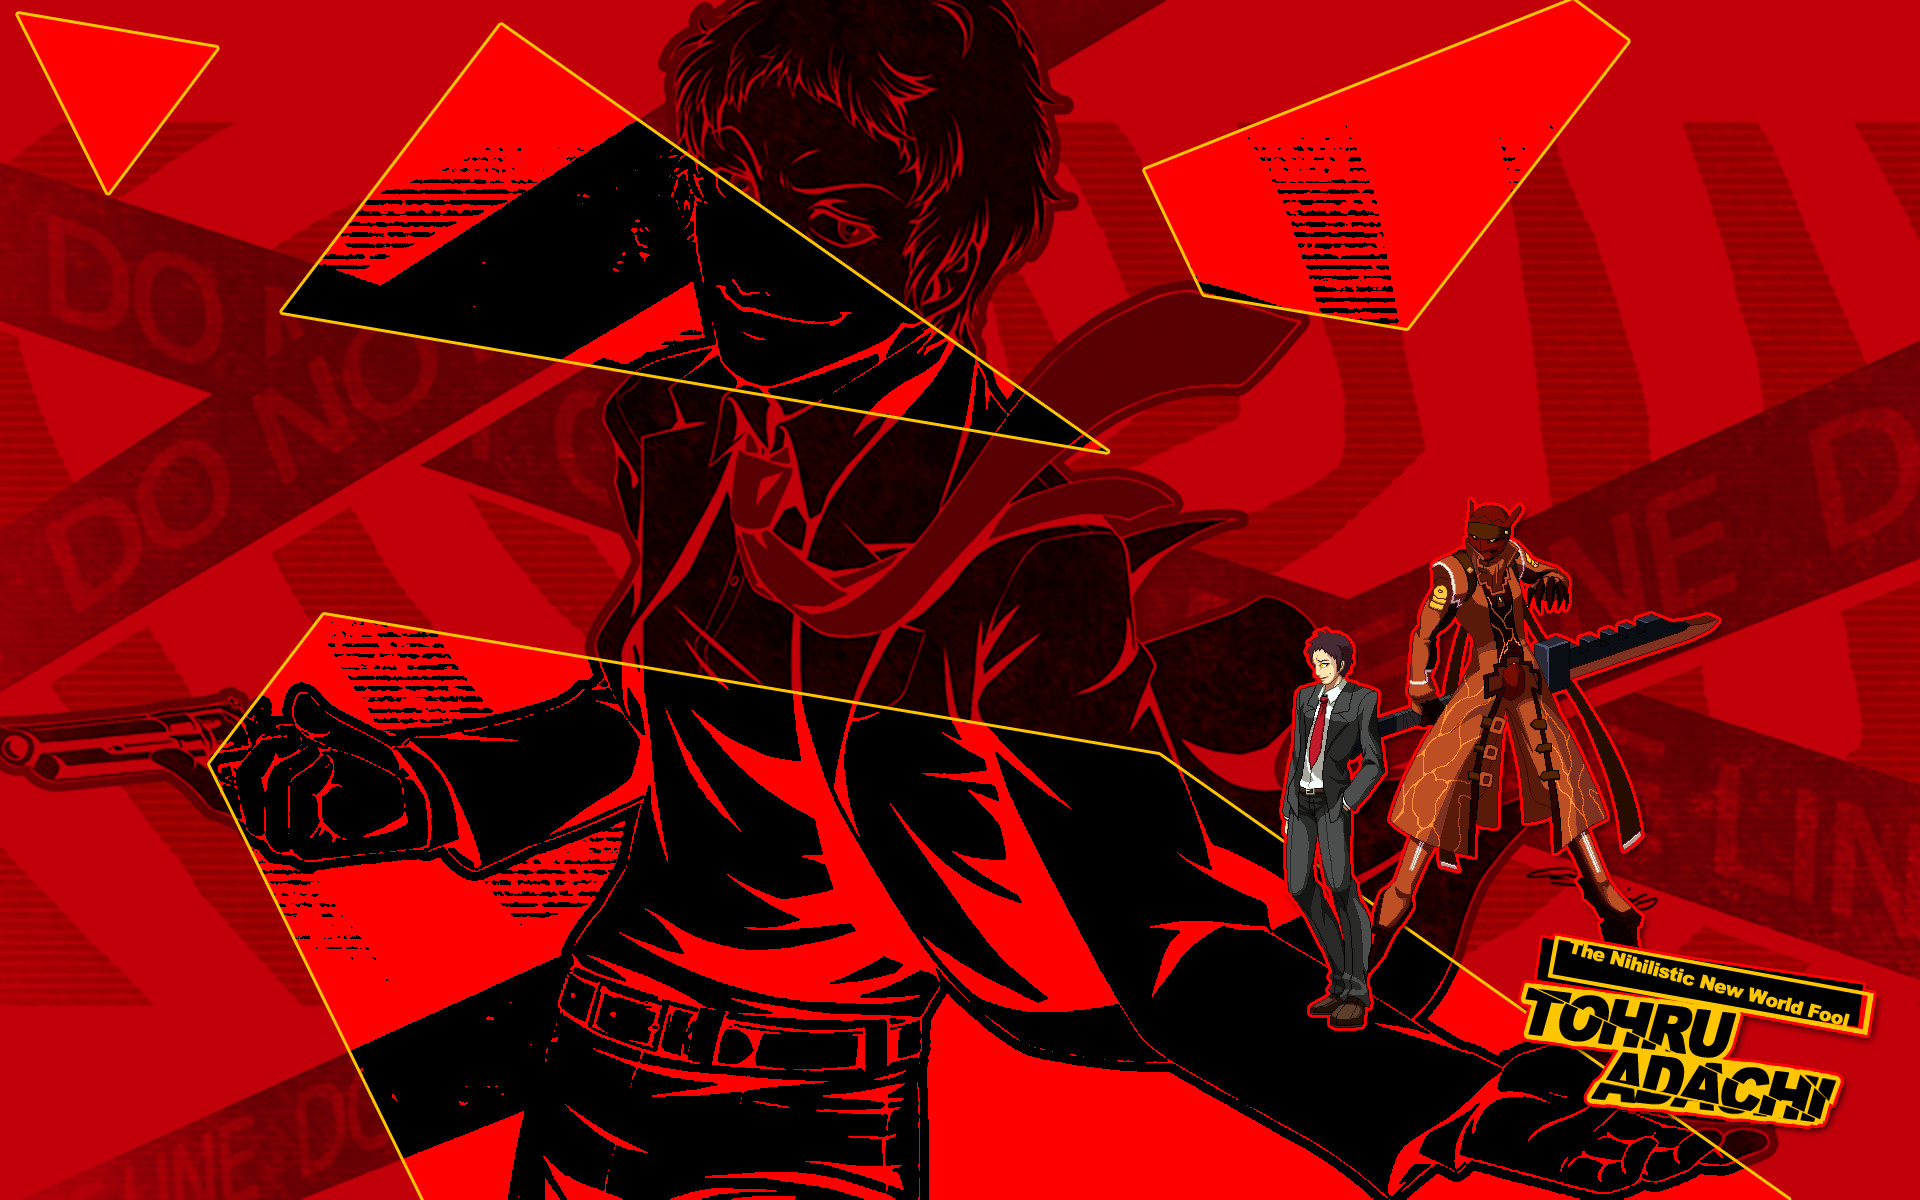 … Adachi – Persona 4 UUSH HD Wallpaper for PC / PS3 by seraharcana